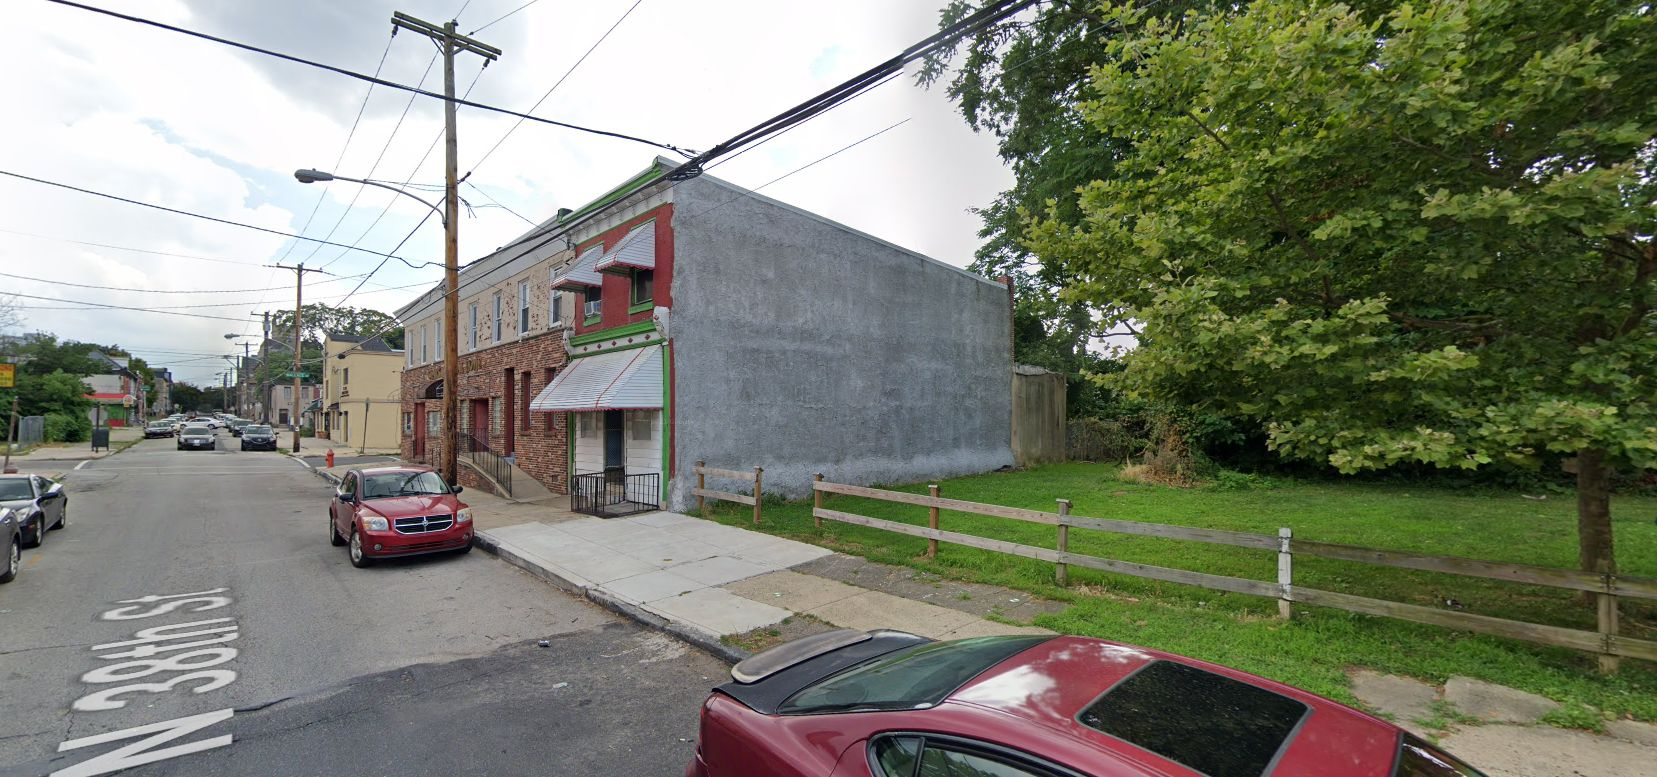 648 North 38th Street. Looking southwest. Credit: Google Maps